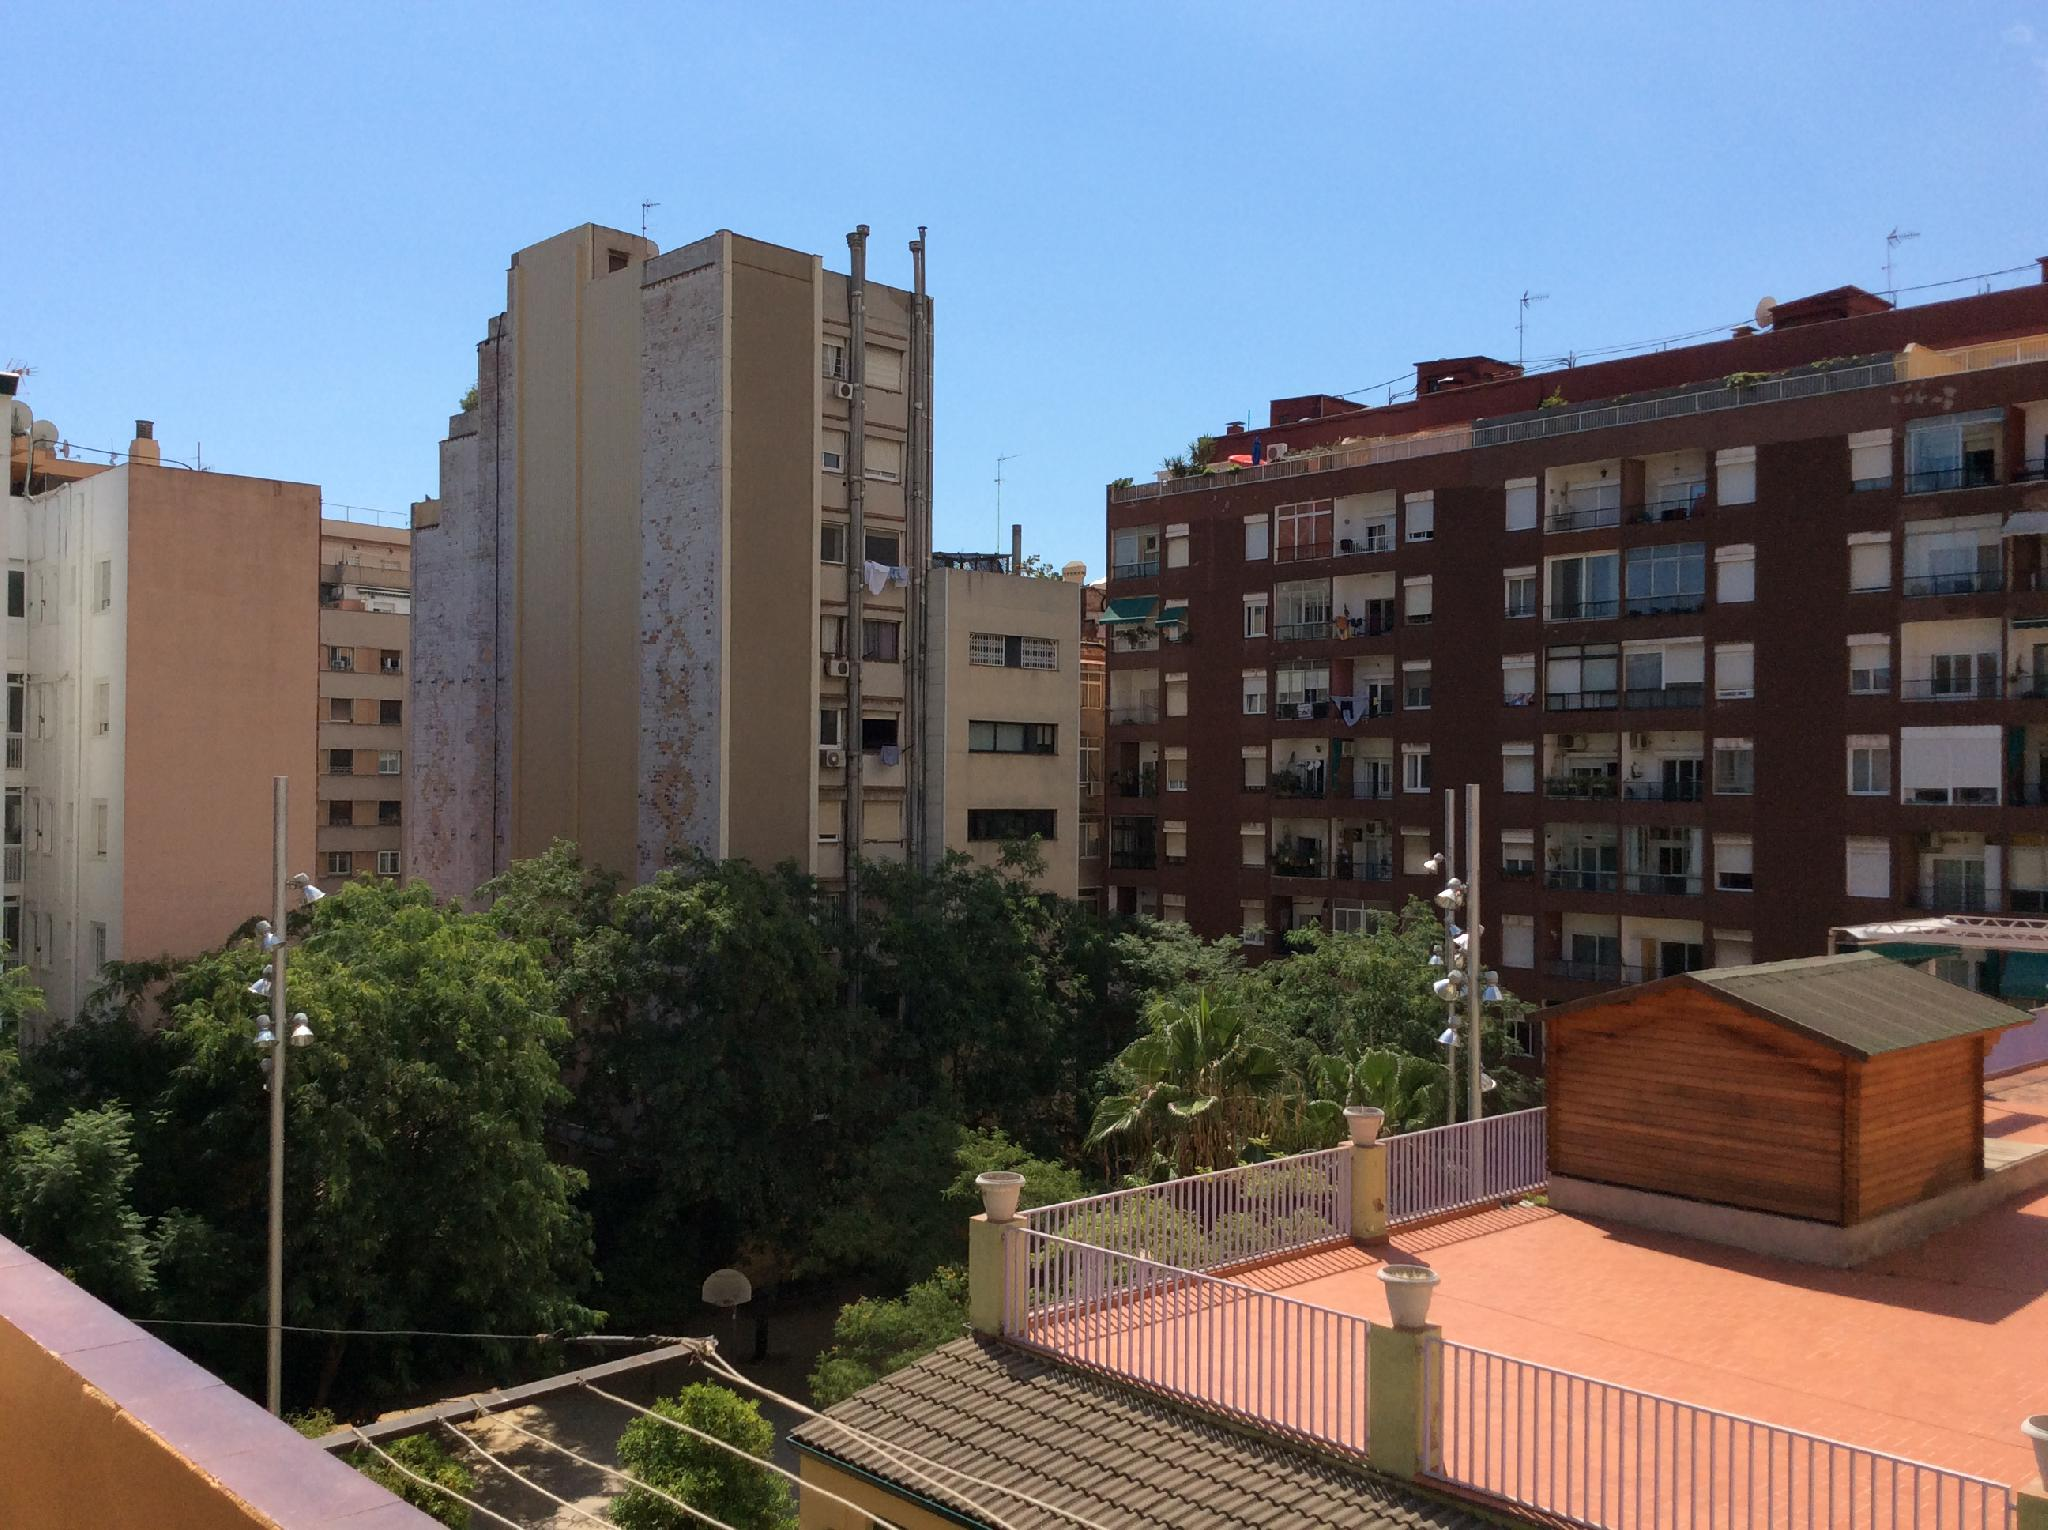 flat-for-sale-in-castillejos-valencia-la-sagrada-familia-in-barcelona-210269472